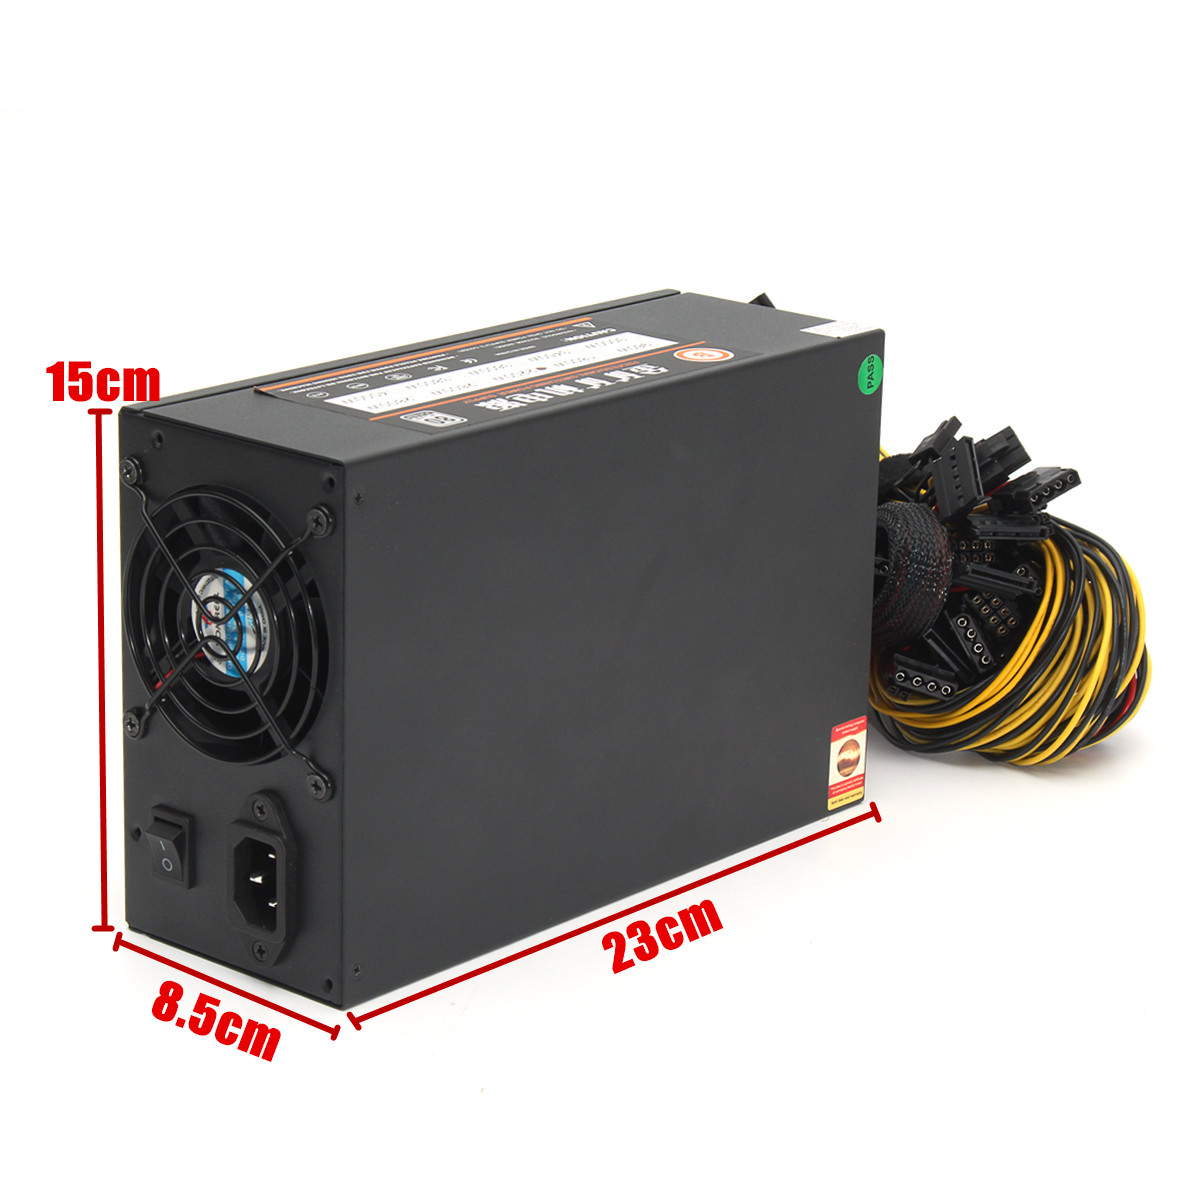 2200W Mine Chassis Power Supply Rig Coin Miner Black Conversion 230*150*85MM